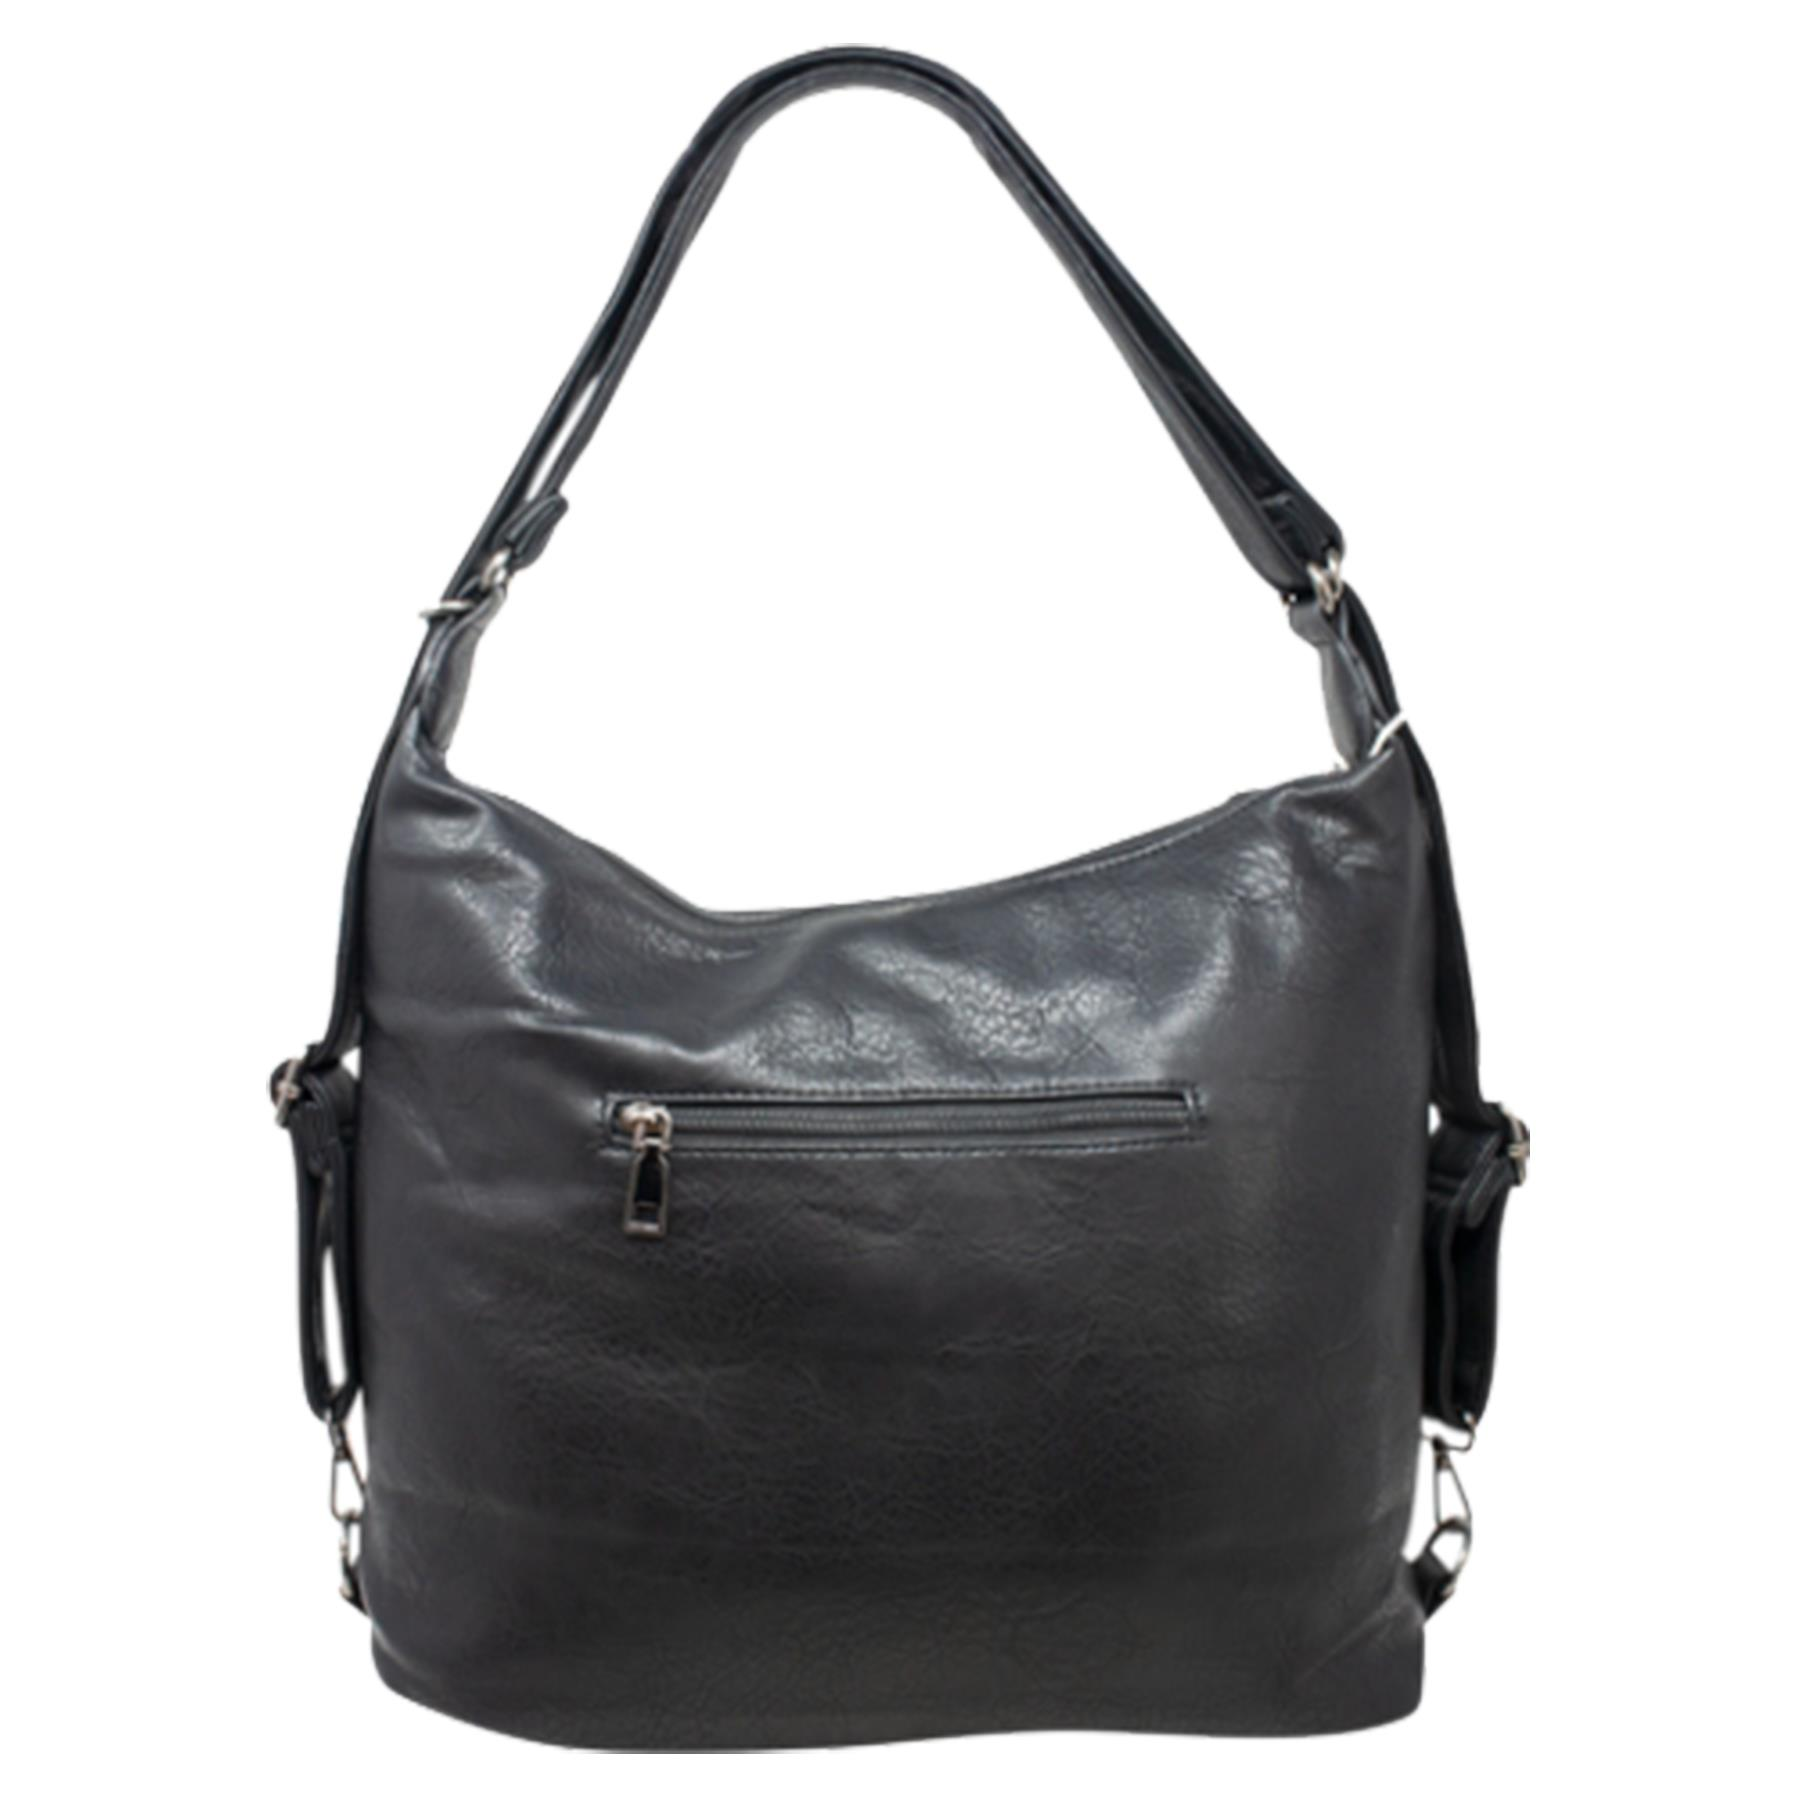 New-Women-s-Men-s-Faux-Leather-Multi-Purpose-Crossbody-Messenger-Bag thumbnail 4